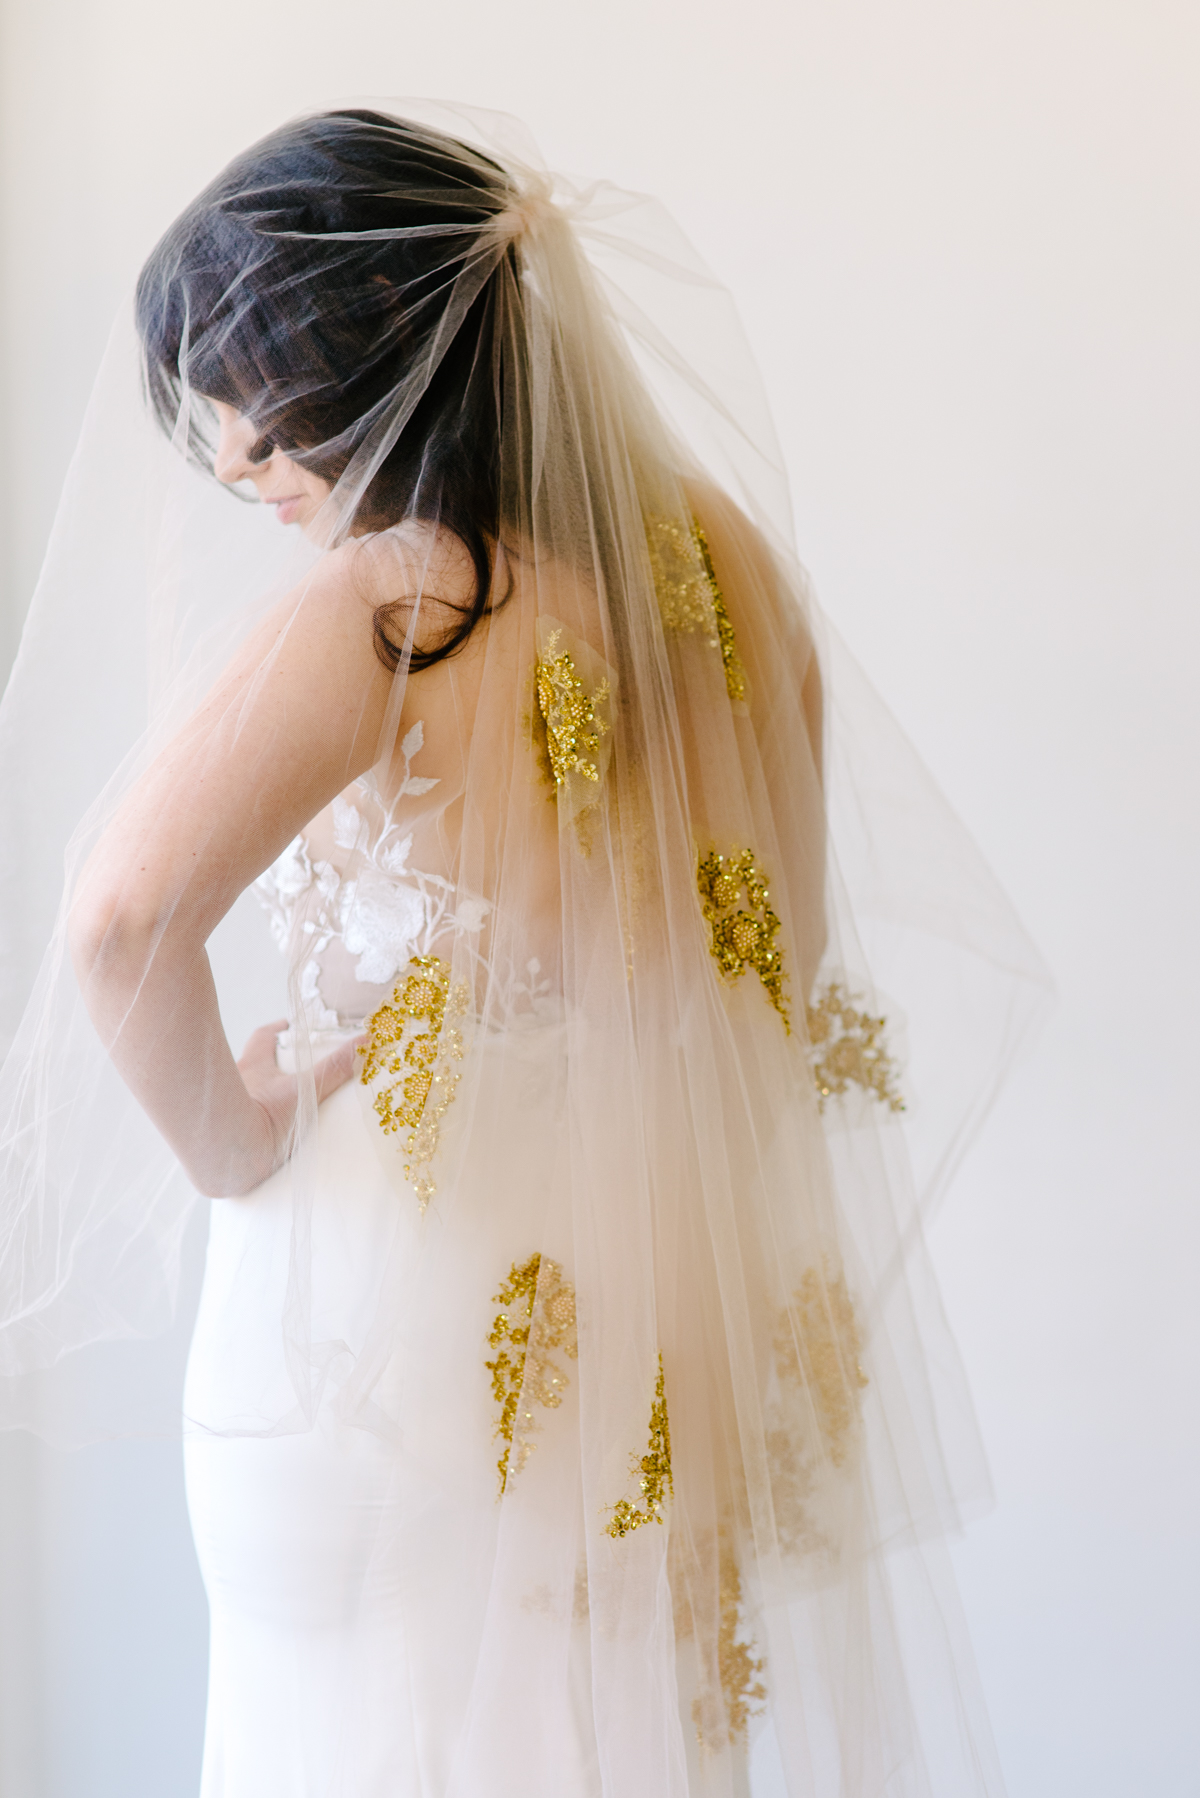 bride wearing veil with gold appliqués